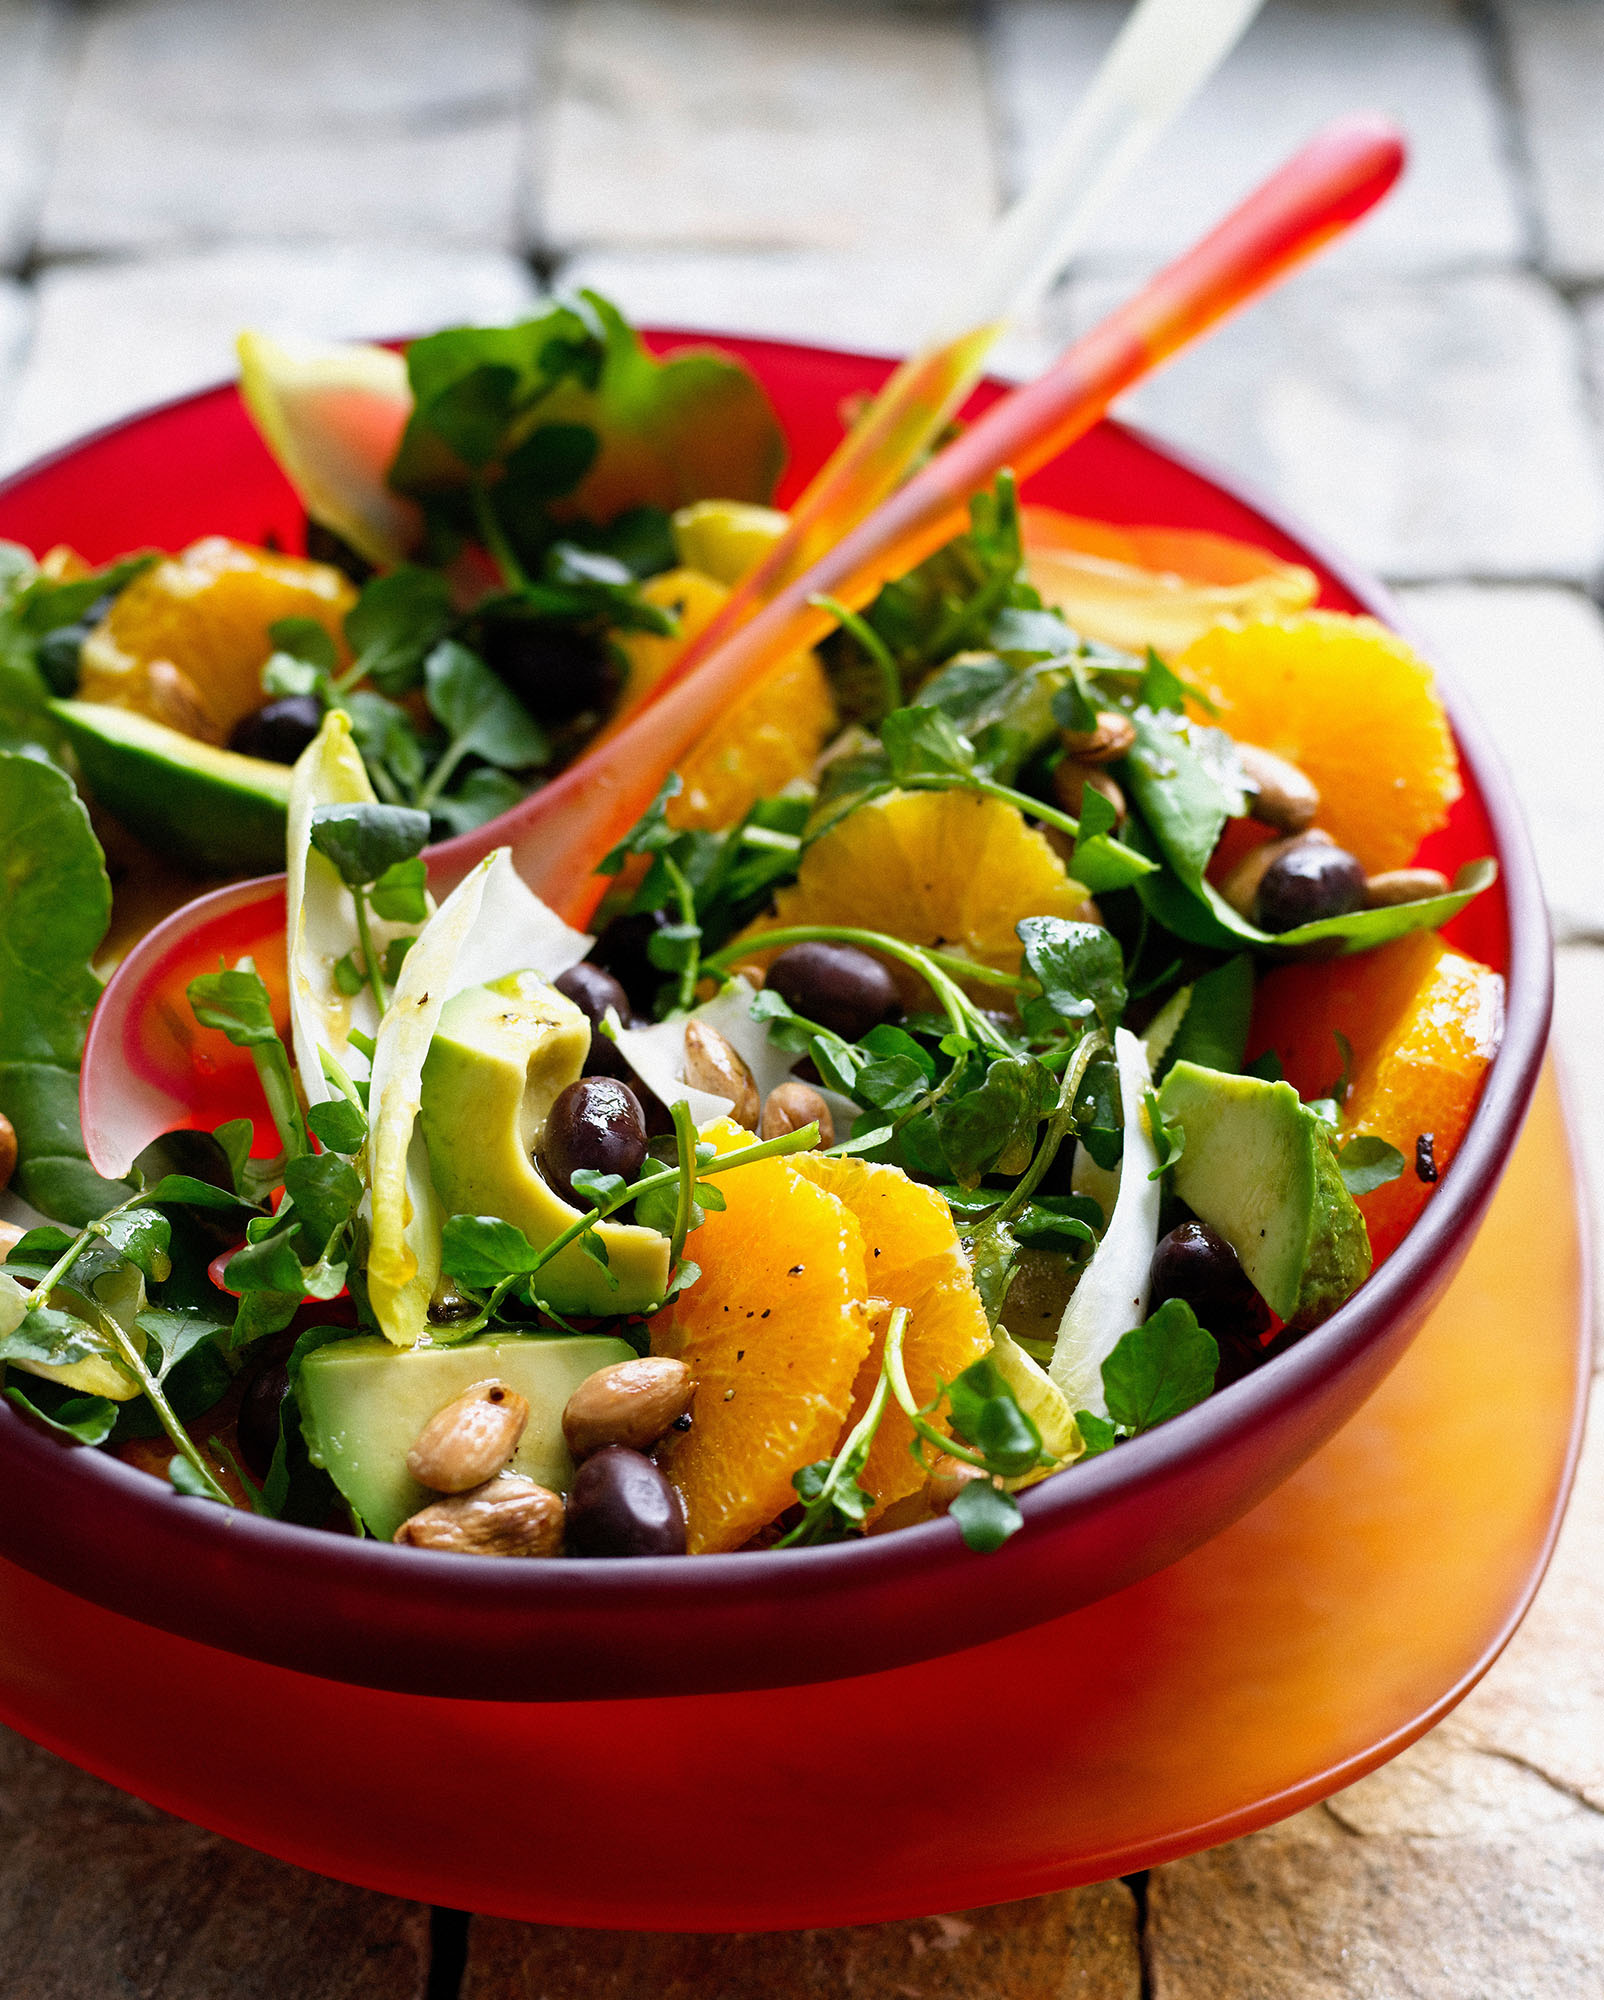 Dressed green salad